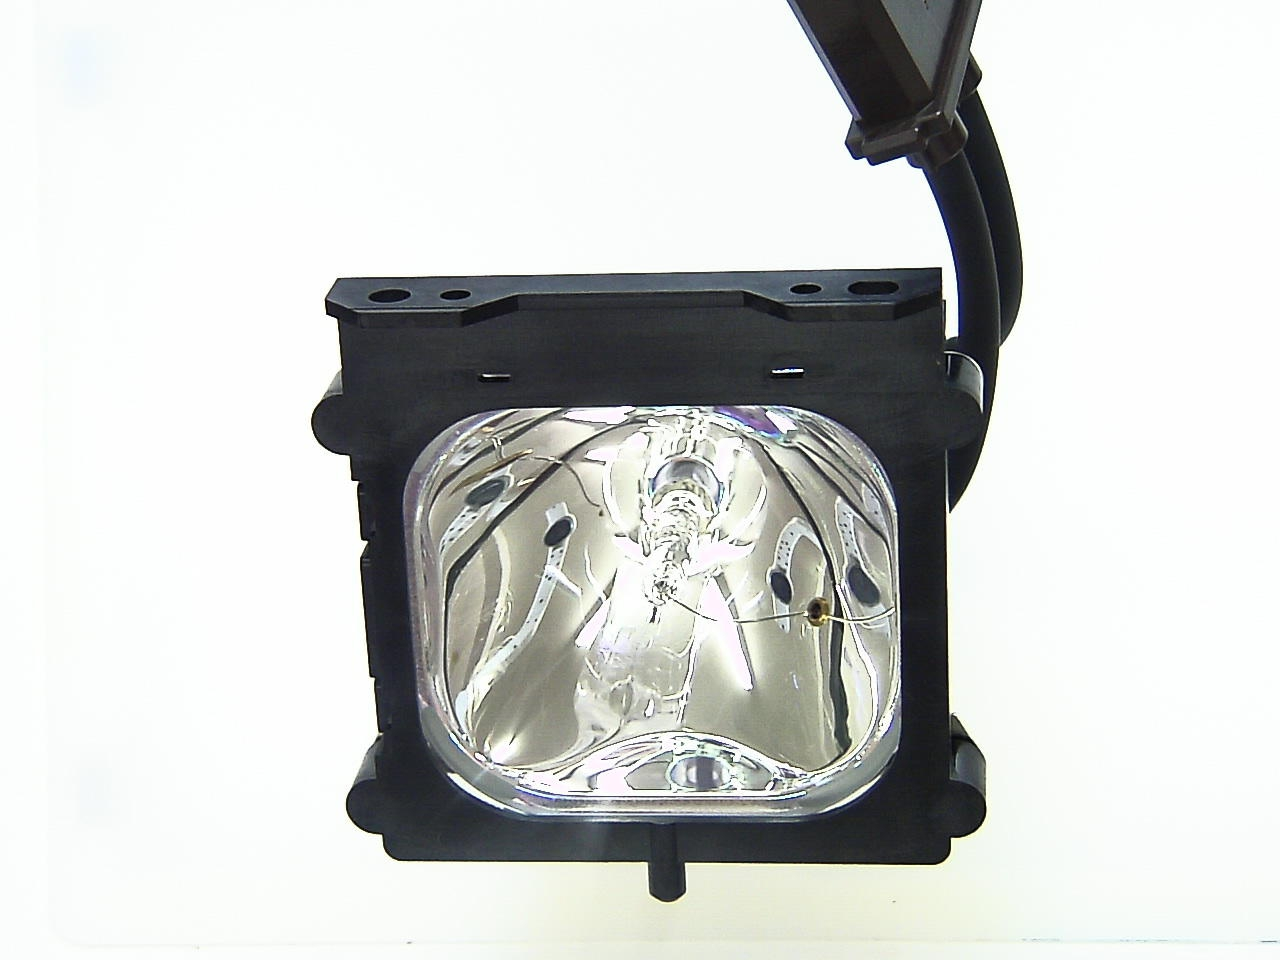 SIM2 SIM2 HT300 XTRA (Philips bulb) Genuine Original Projector Lamp